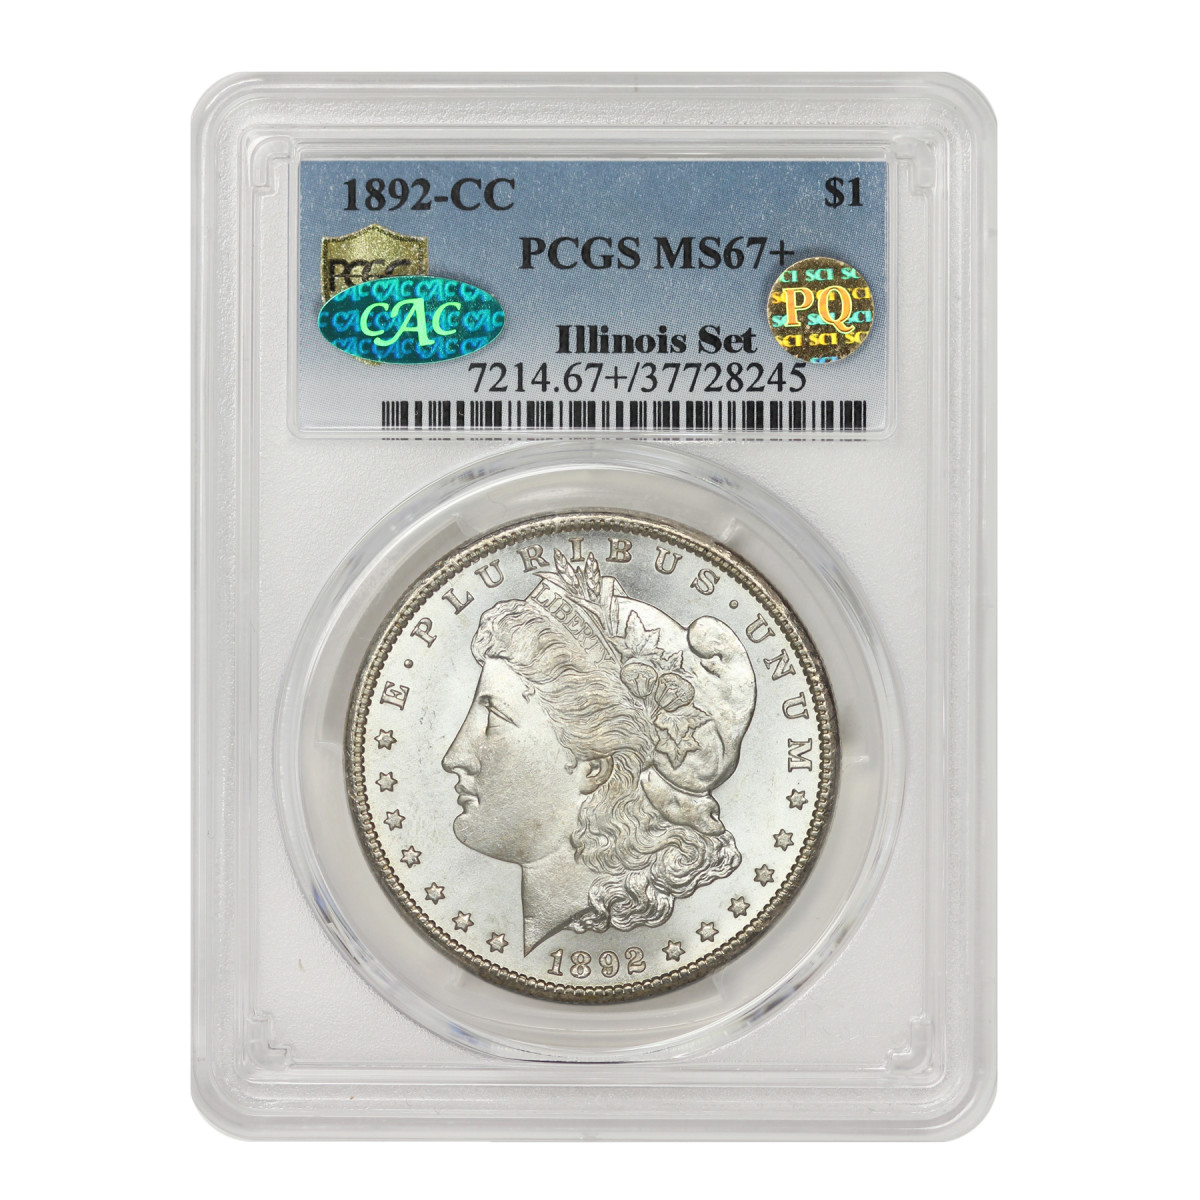 The finest known 1892-CC Morgan dollar, graded PCGS MS67+ CAC/PQ with none graded higher, is one of the highlights of the just-revealed, all-time finest Illinois Set Collection. (Photo courtesy of Mint State Gold by Stuppler and Company.)